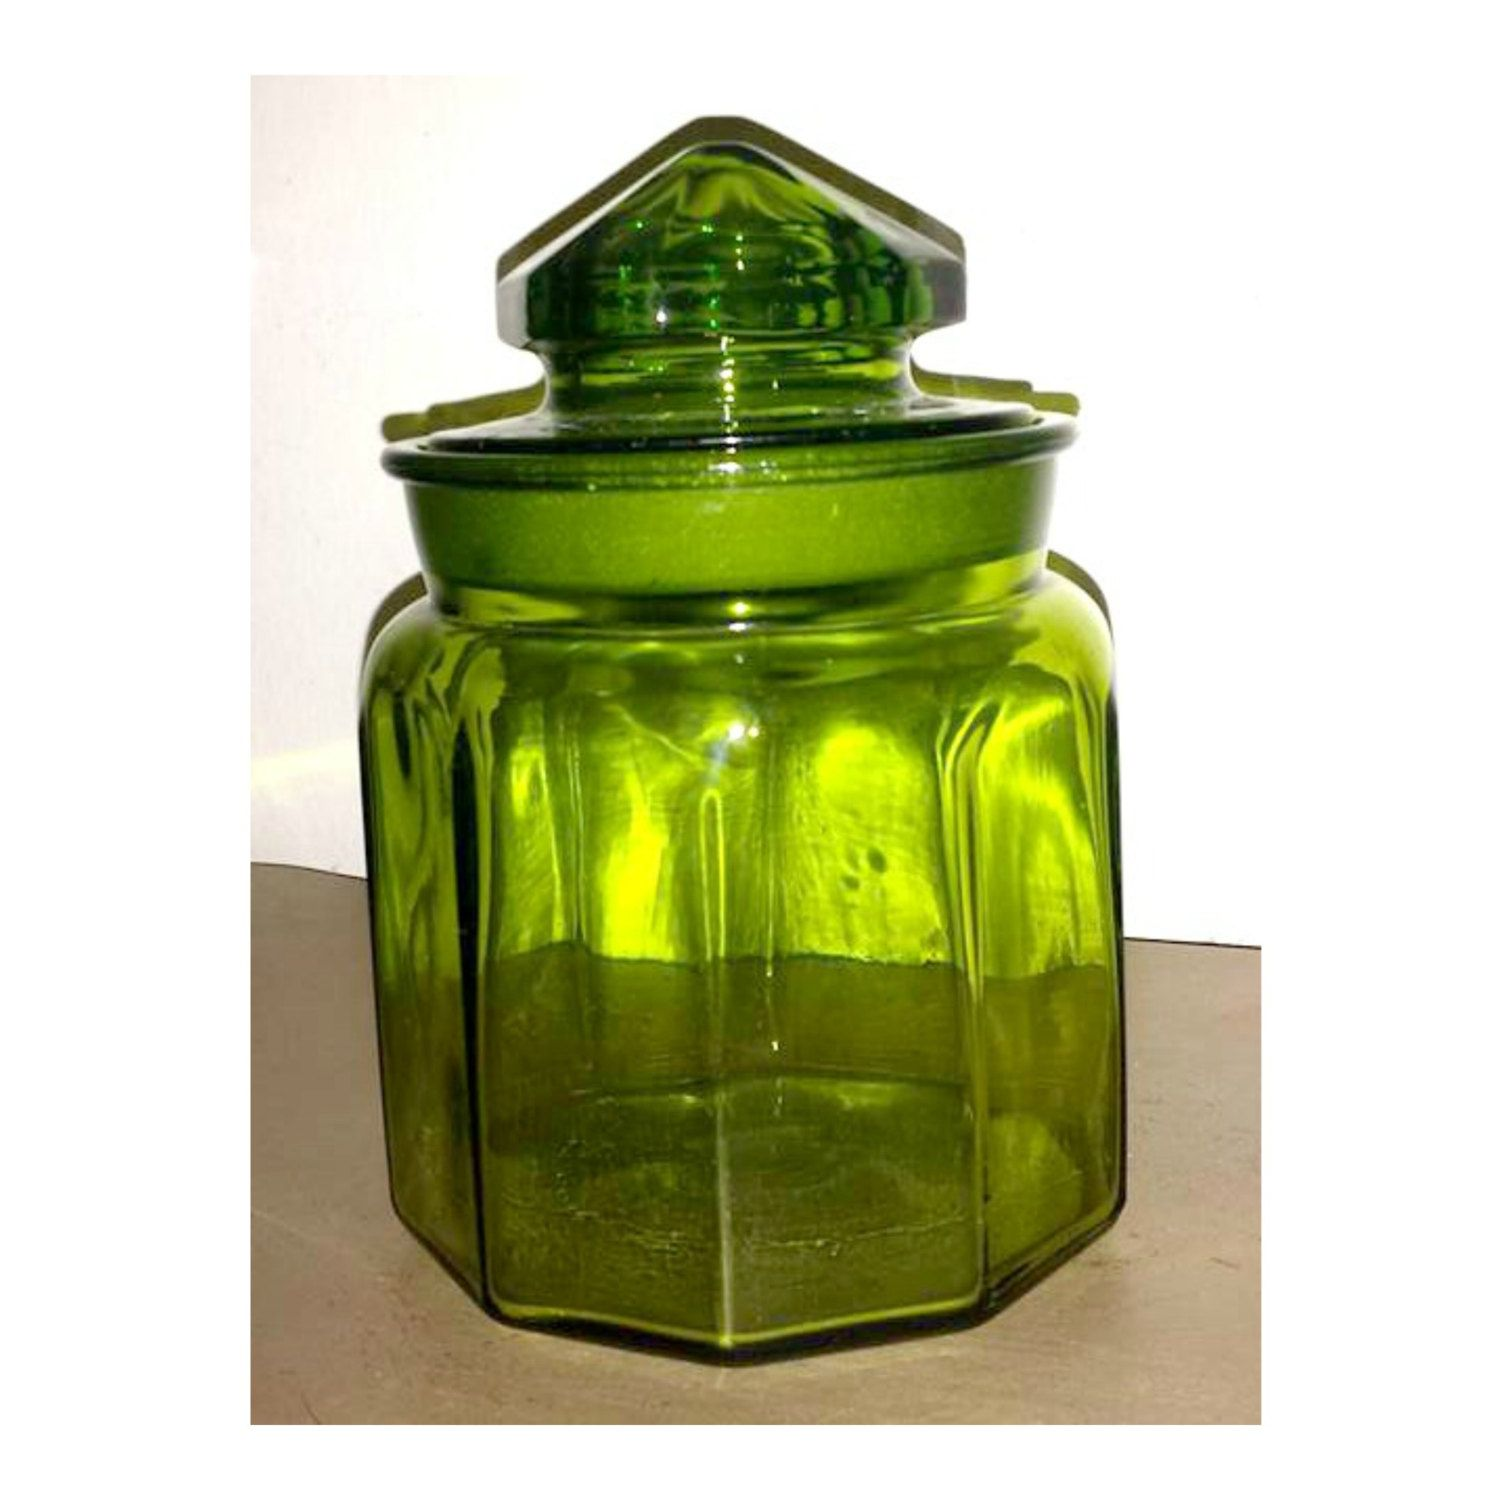 L E Smith Green Glass Canister,Green Apothecary Jar, Green Glass Jar,Glass  Canister